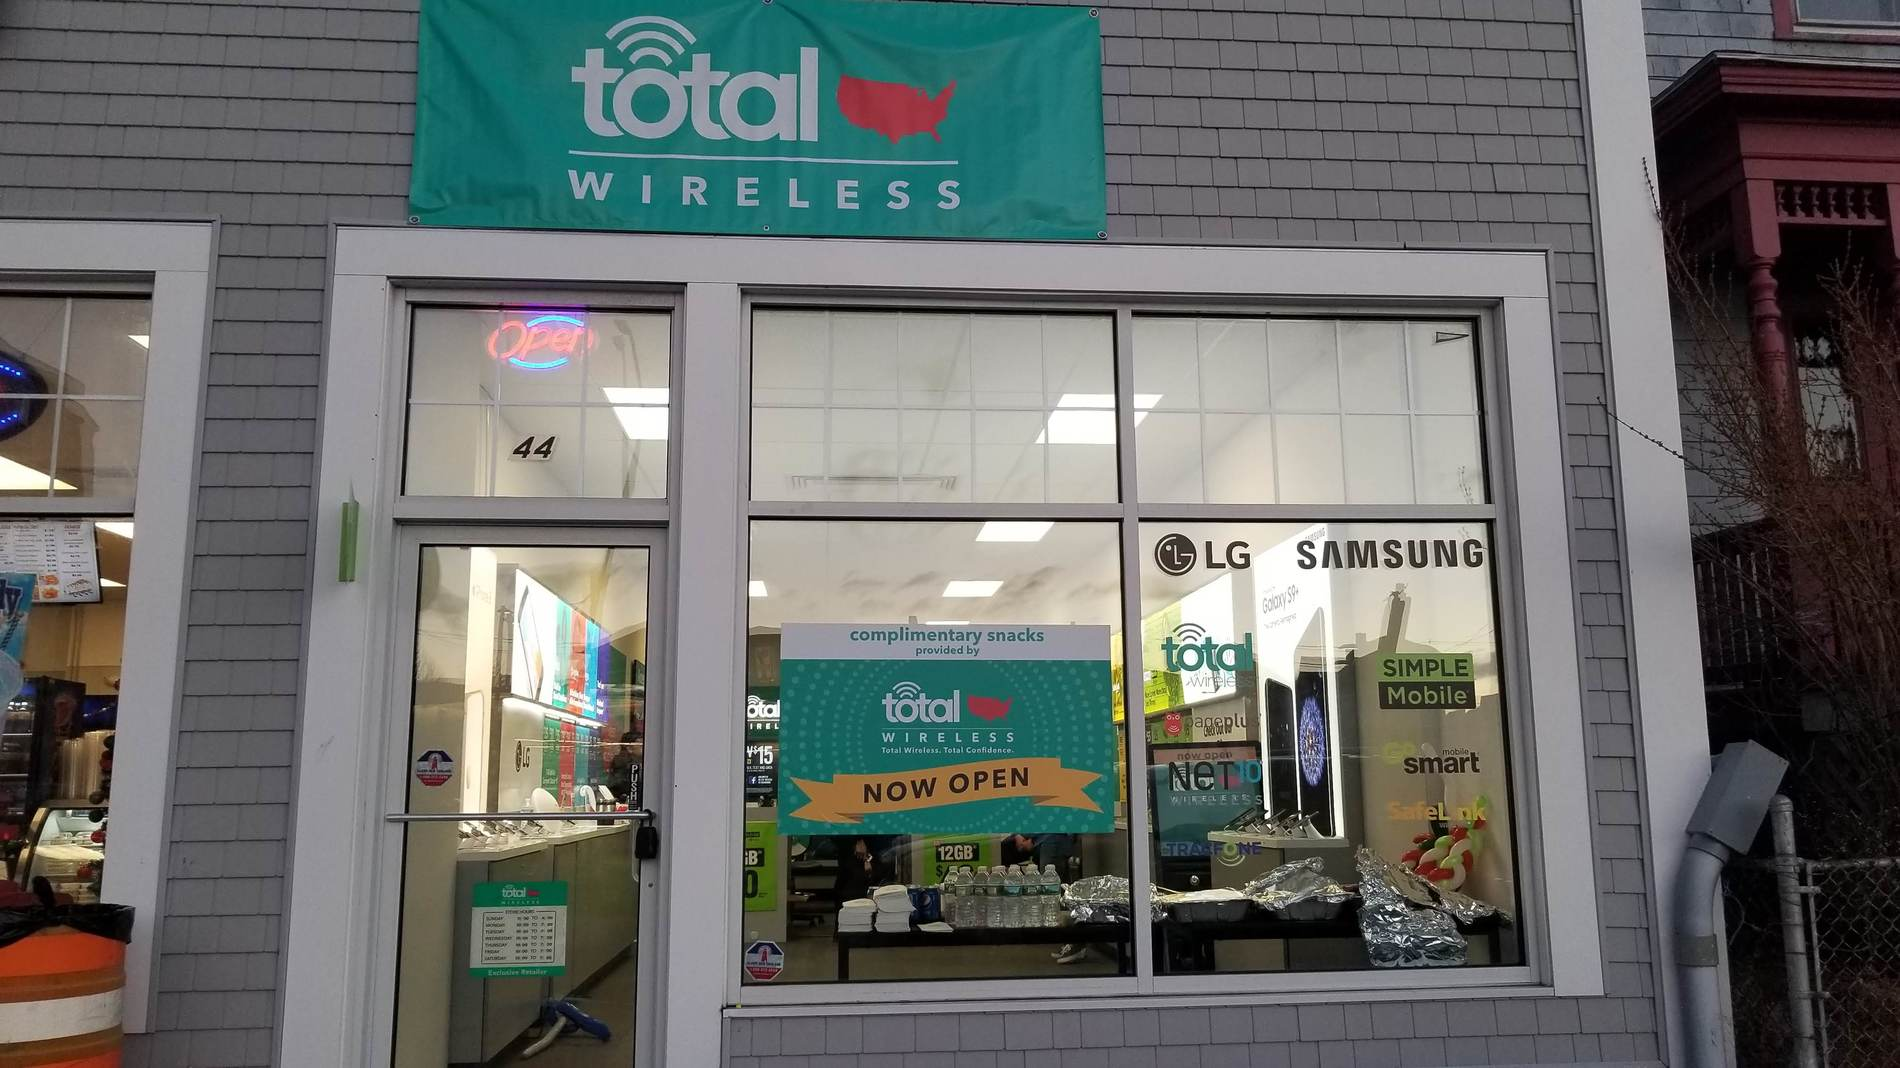 Total Wireless Store front image in New Bedford,  MA